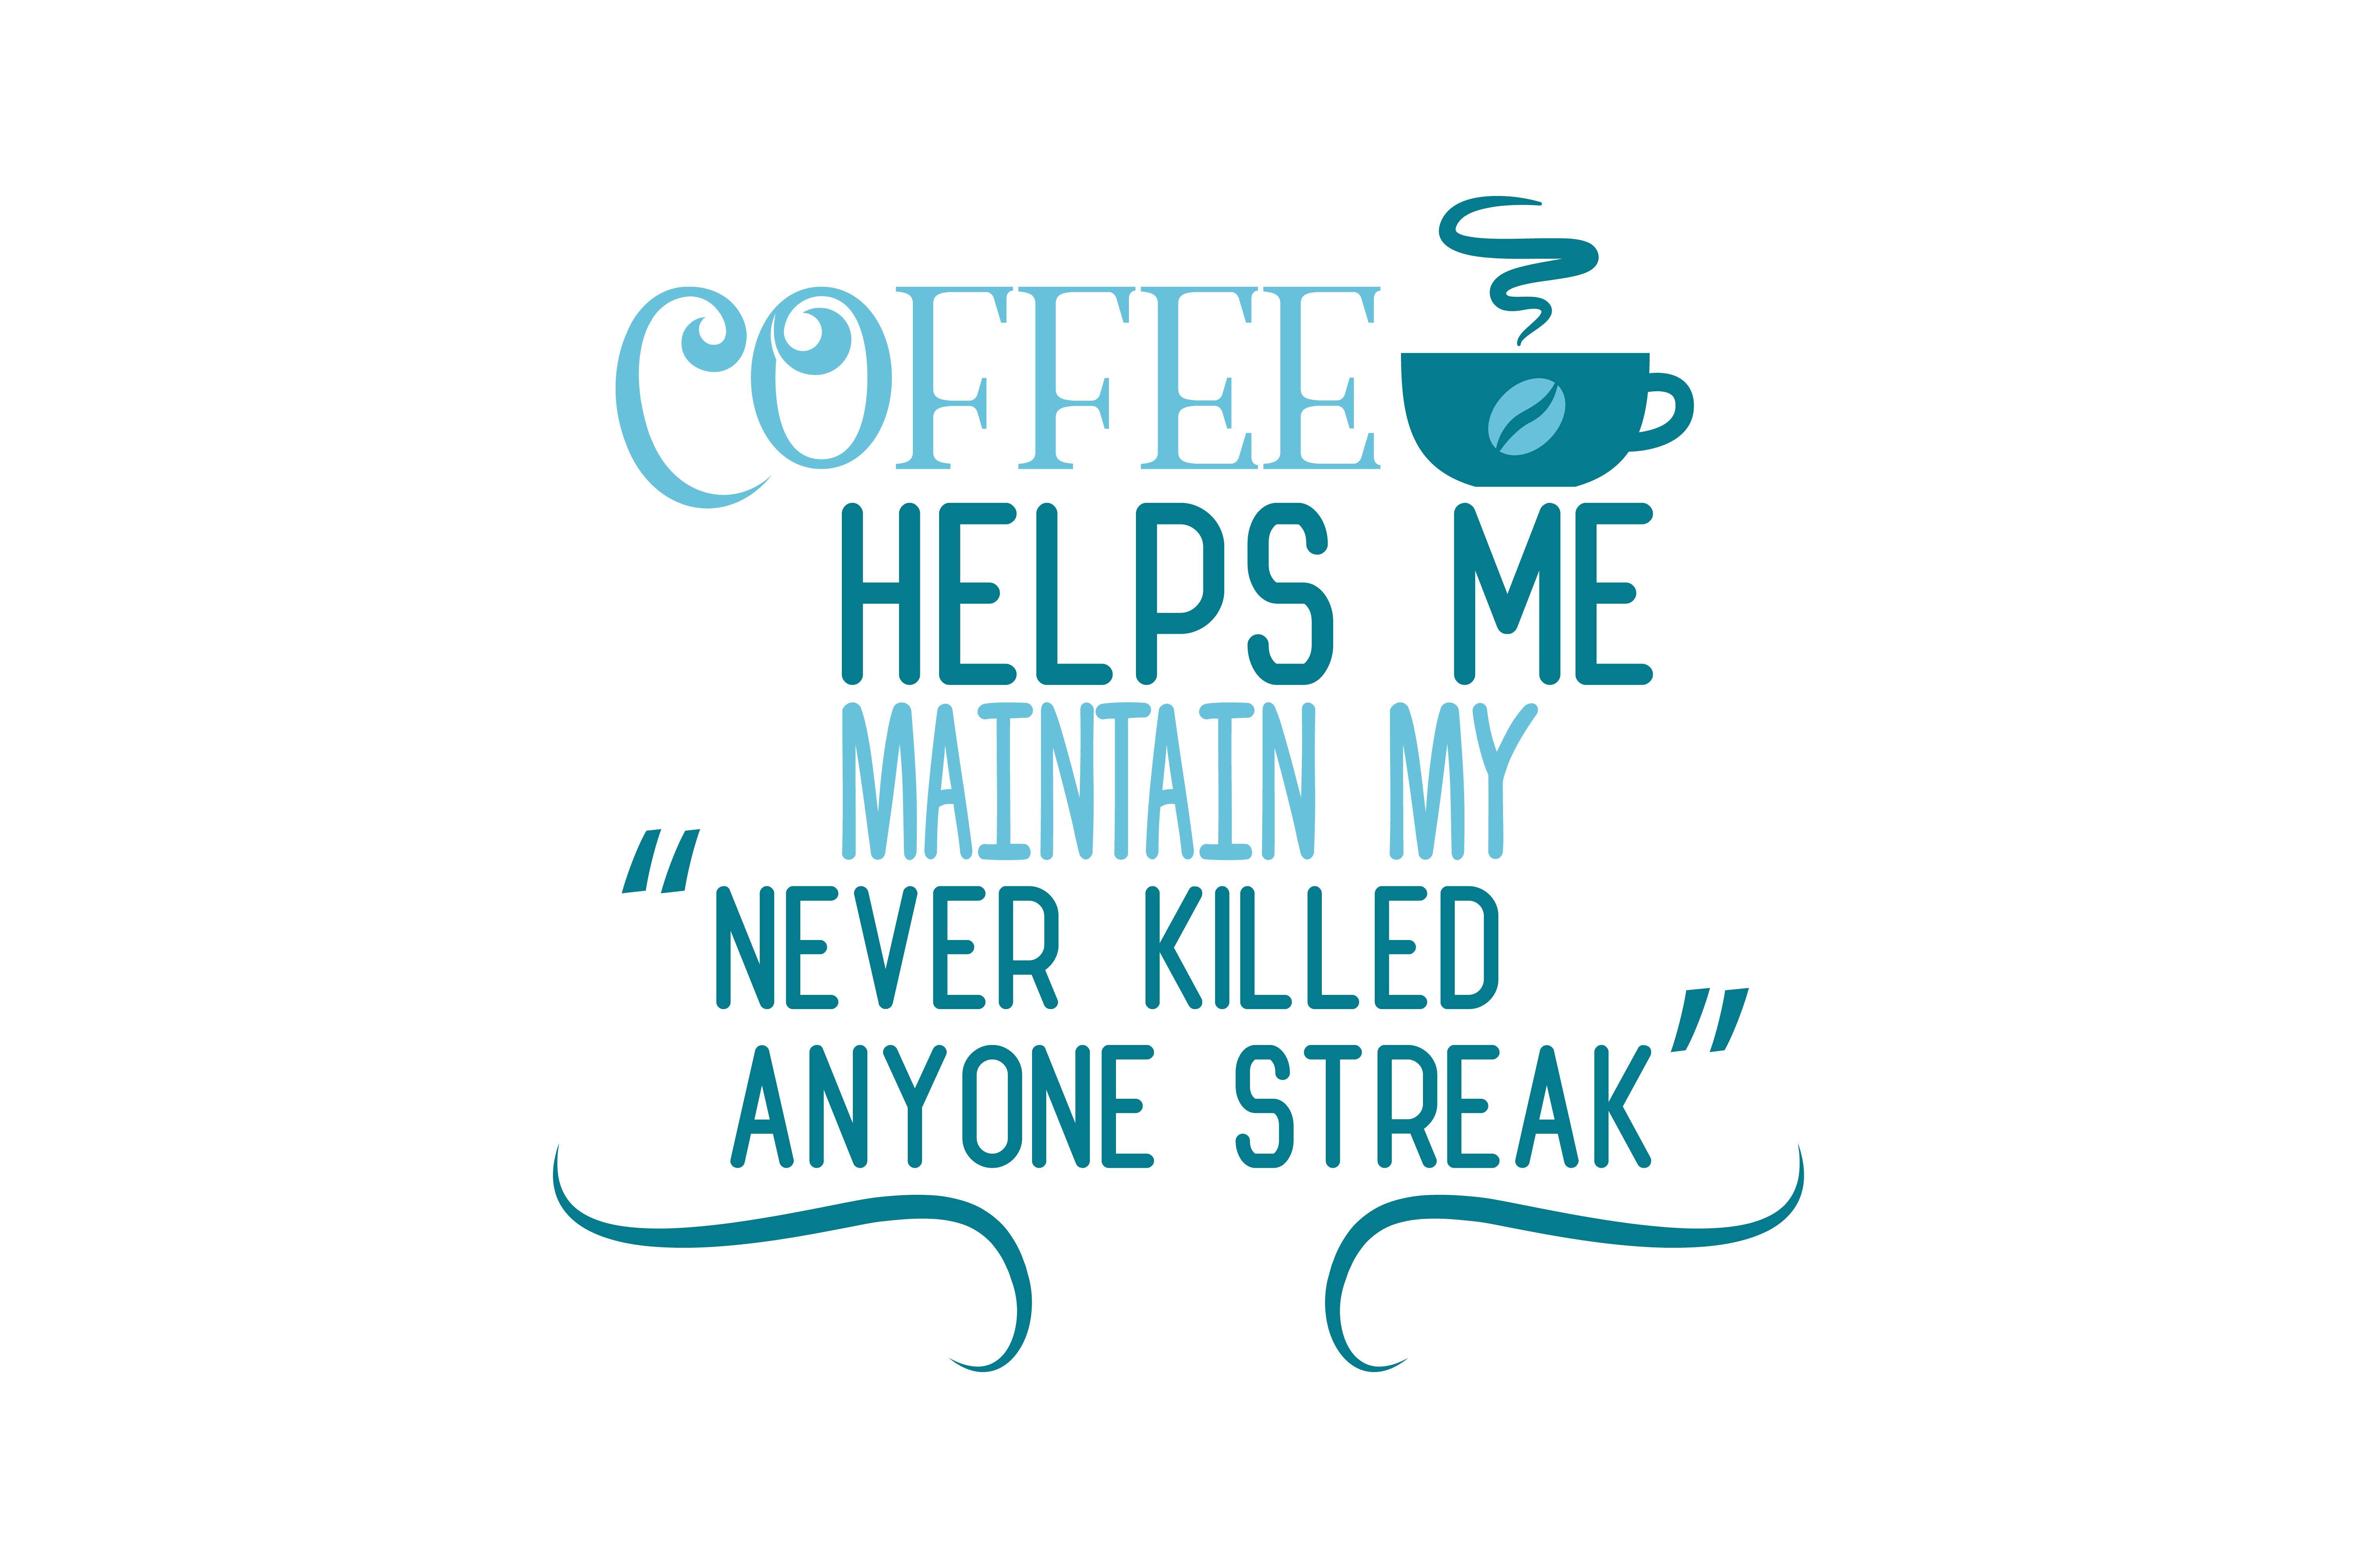 Download Free Coffee Helps Me Maintain My Never Killed Anyone Streak Quote Svg for Cricut Explore, Silhouette and other cutting machines.